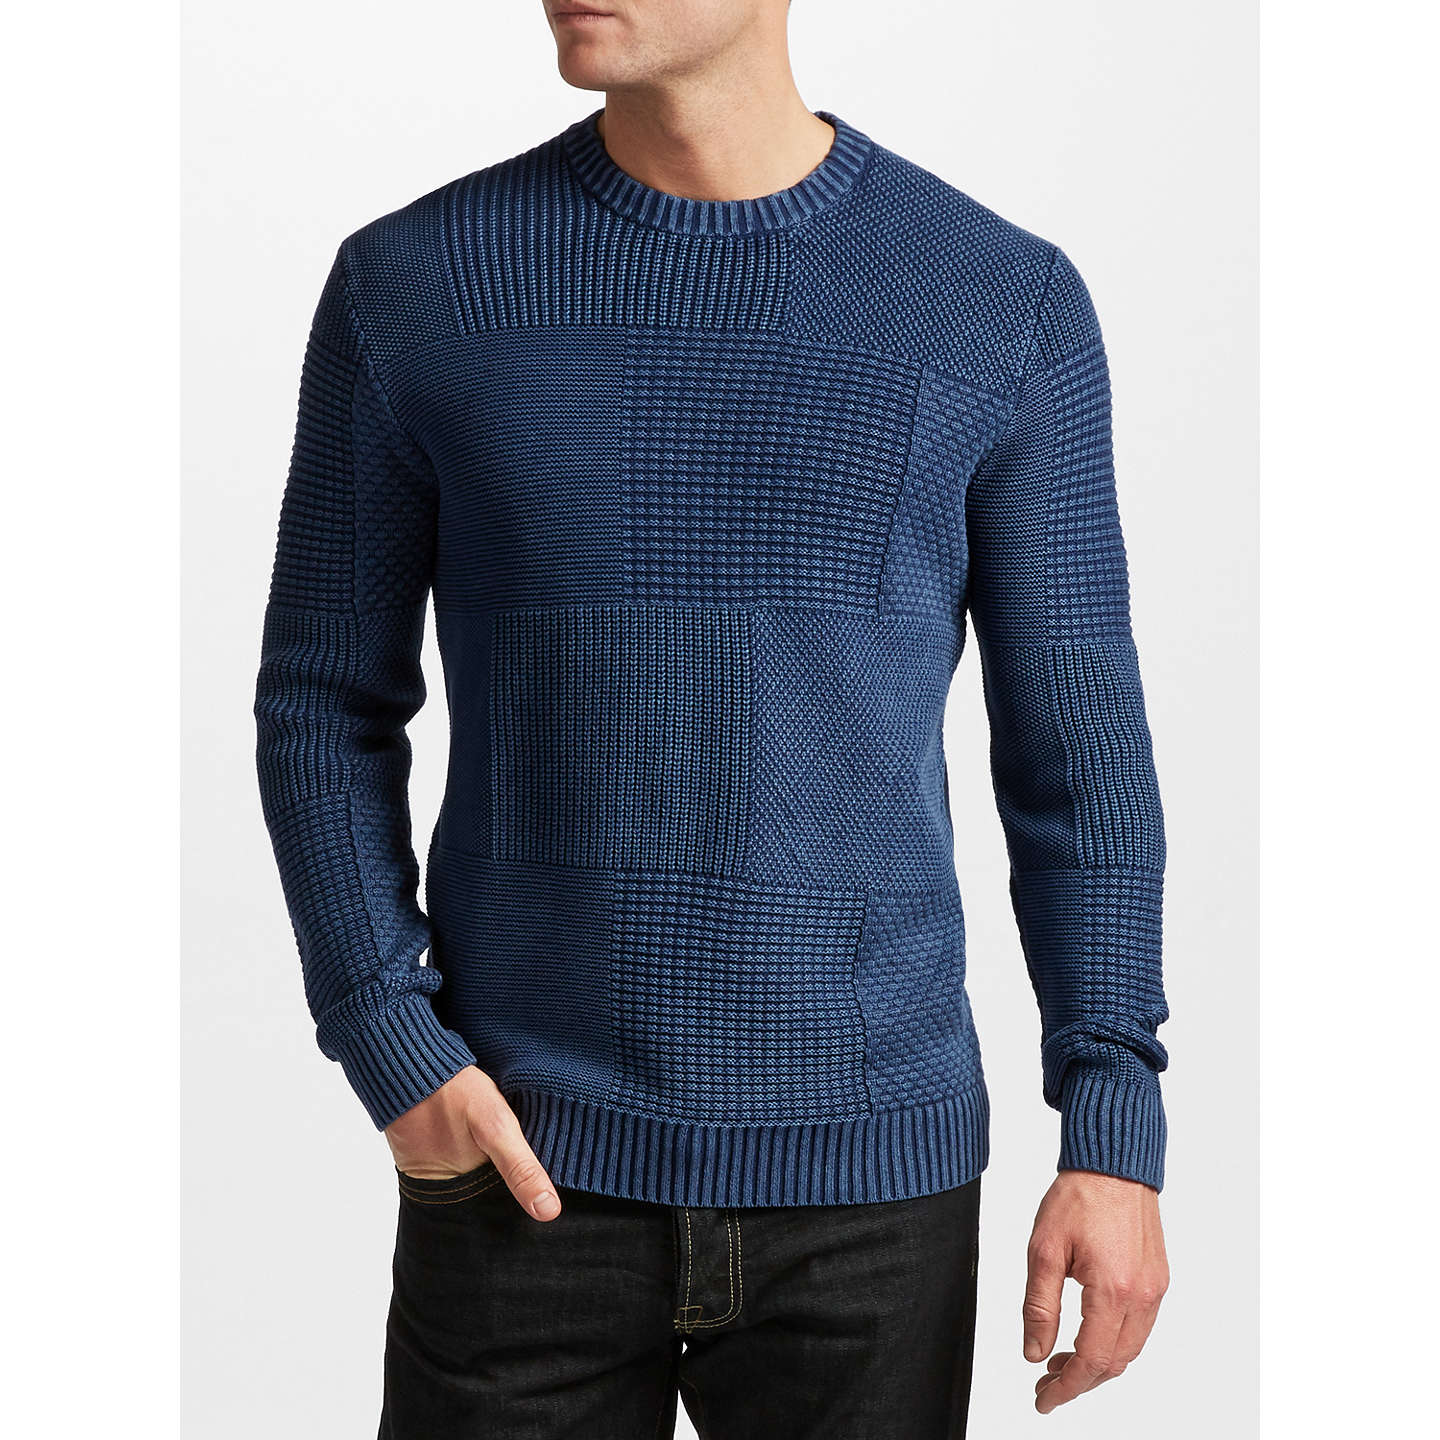 BuyJOHN LEWIS & Co. Patchwork Crew Neck Sweatshirt, Indigo, S Online at johnlewis.com